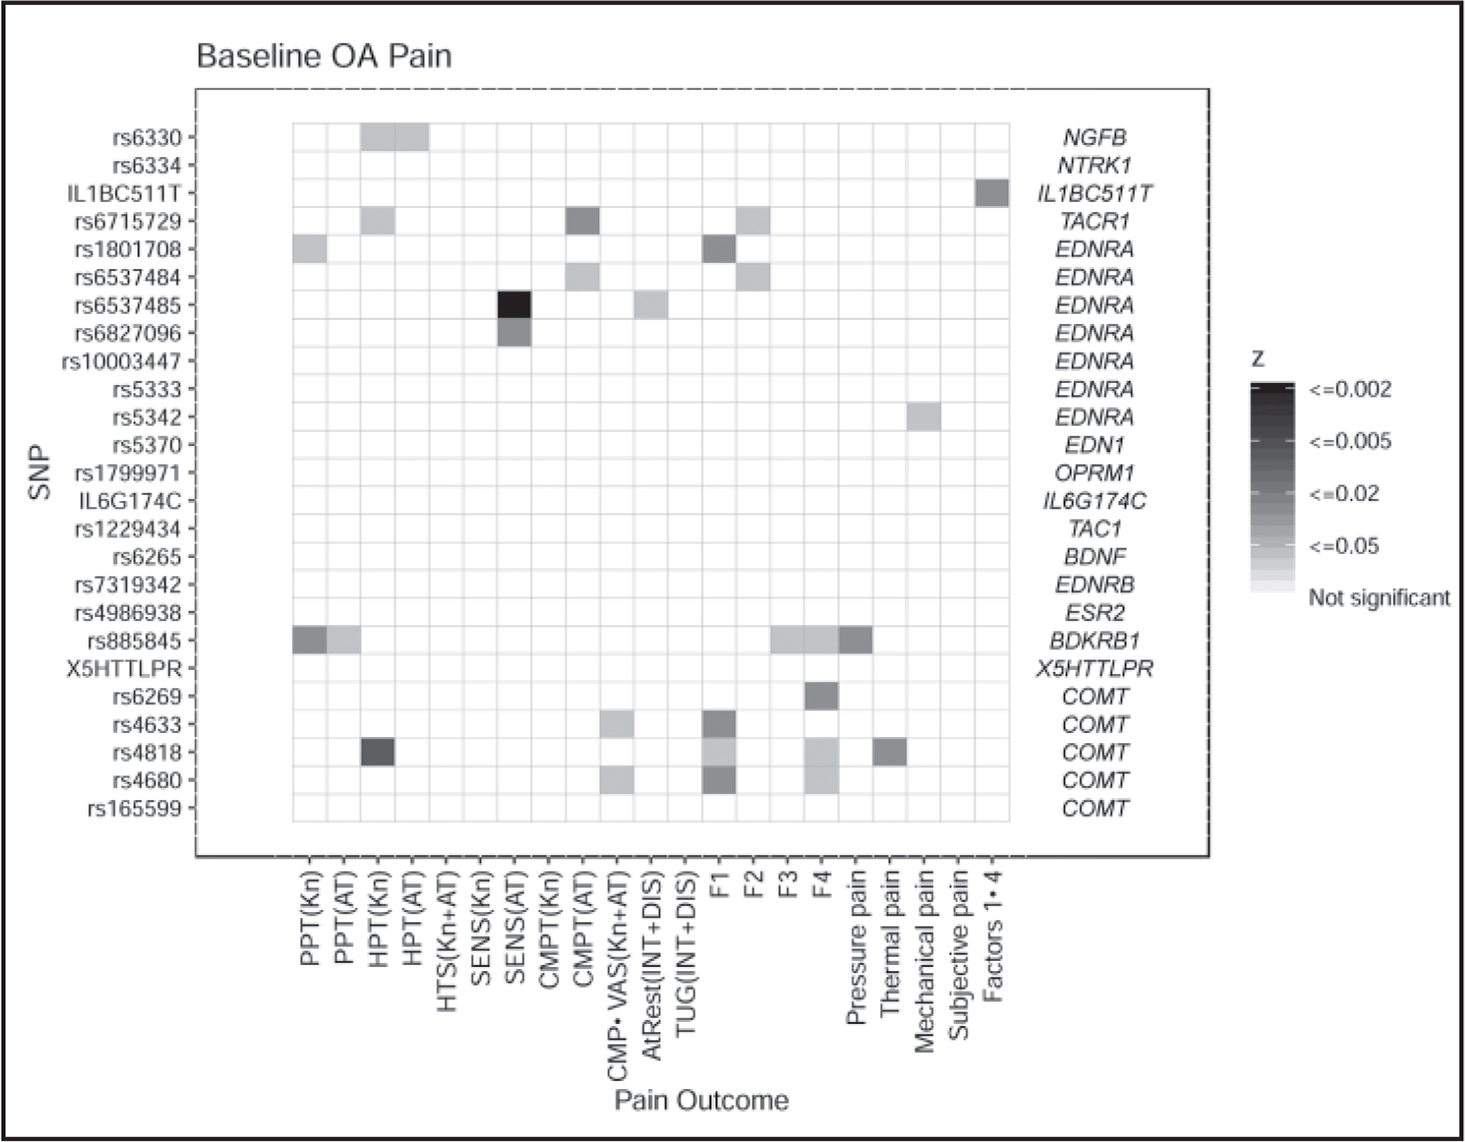 Genetic association p values for osteoarthritis (OA) pain phenotypes.Note. OA = osteoarthritis; SNP = single nucleotide polymorphism; NGFB = nerve growth factor beta; NTRK1 = neurotrophic receptor tyrosine kinase 1; IL1B = interleukin-1 beta; TACR1 = tachykinin receptor 1; EDNRA = endothelin receptor A; EDN1 = endothelin 1; OPRM1 = opioid receptor mu 1; IL-6 = interleukin-6; TAC1 = tachykinin precursor 1; BDNF = brain derived neurotrophic factor; EDNRB = endothelin receptor B; ESR2 = estrogen receptor 2; BDKRB1 = bradykinin receptor B1; 5HTT = serotonin transporter; COMT = catechol-O-methyltransferase; PPT = pressure pain threshold; HPT = heat pain threshold; HTS = heat temporal summation; Kn = medial joint line; AT = anterior tibialis; SENS = sensation threshold; CMPT = cutaneous mechanical sensation and pain threshold; CMP = cutaneous mechanical pain; VAS = visual analogue scale; INT = intensity; DIS = distress; F = factor.